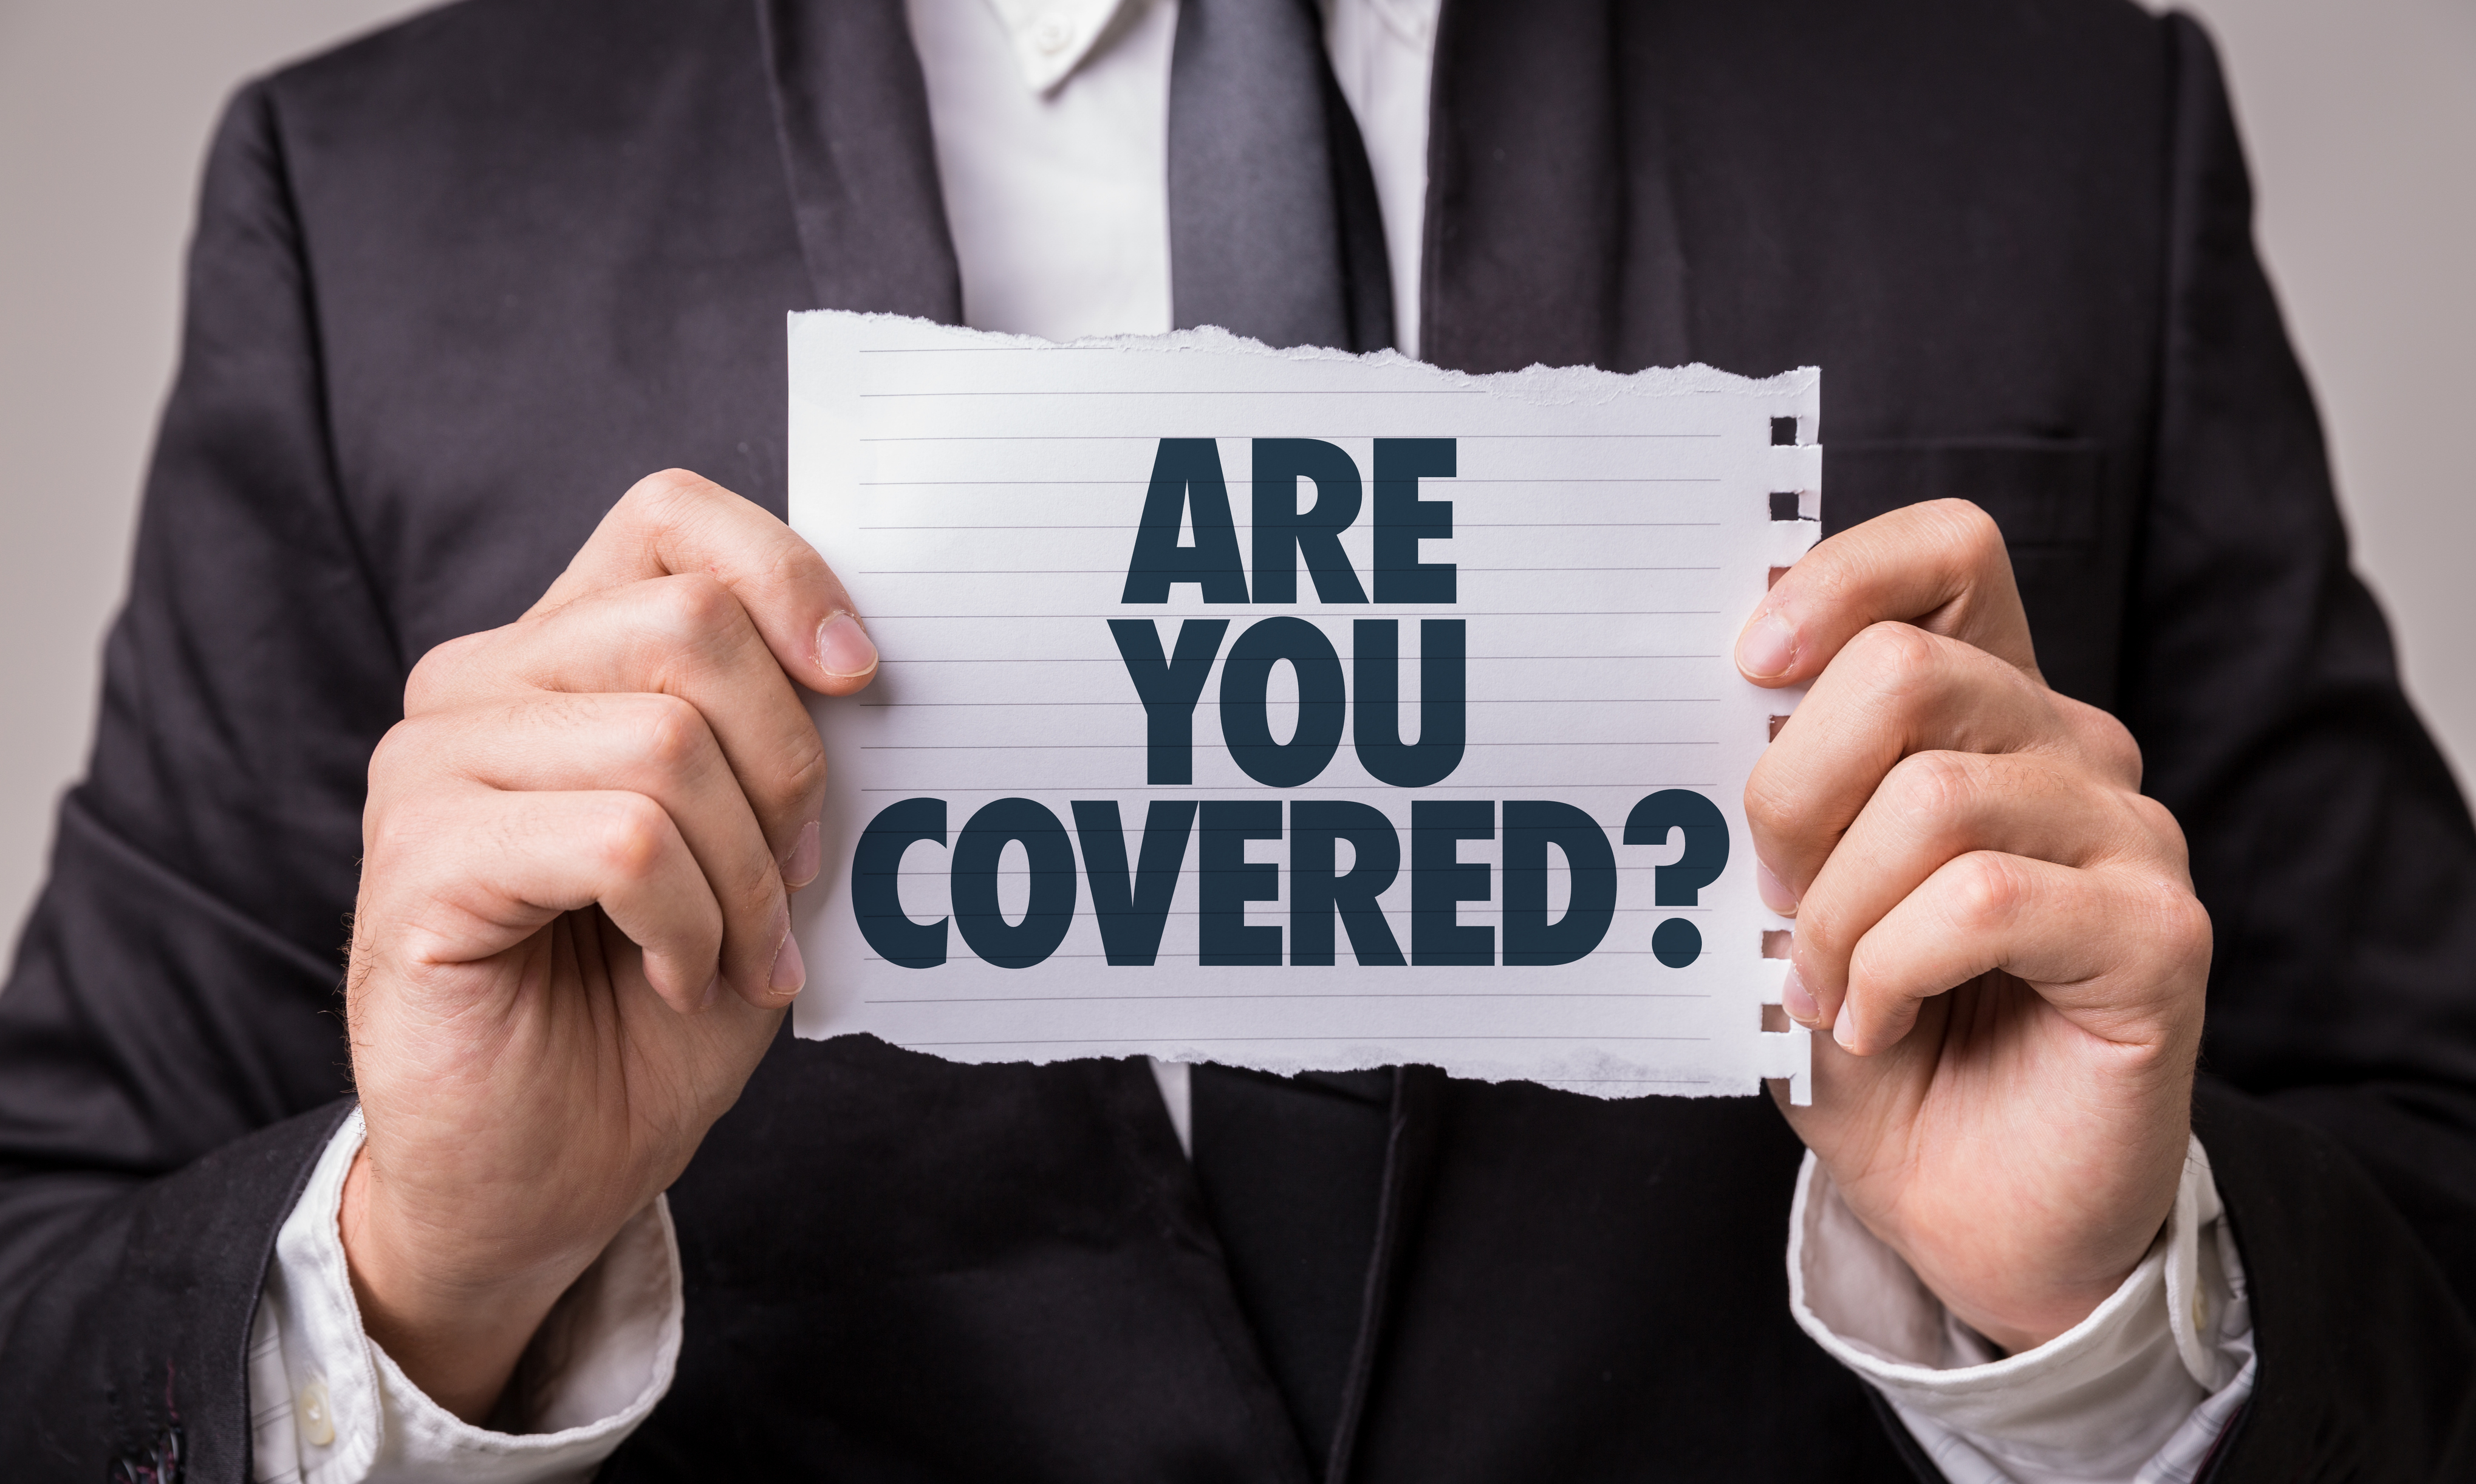 It's Not Enough: How to Avoid Being Underinsured on avanteinsurance.com